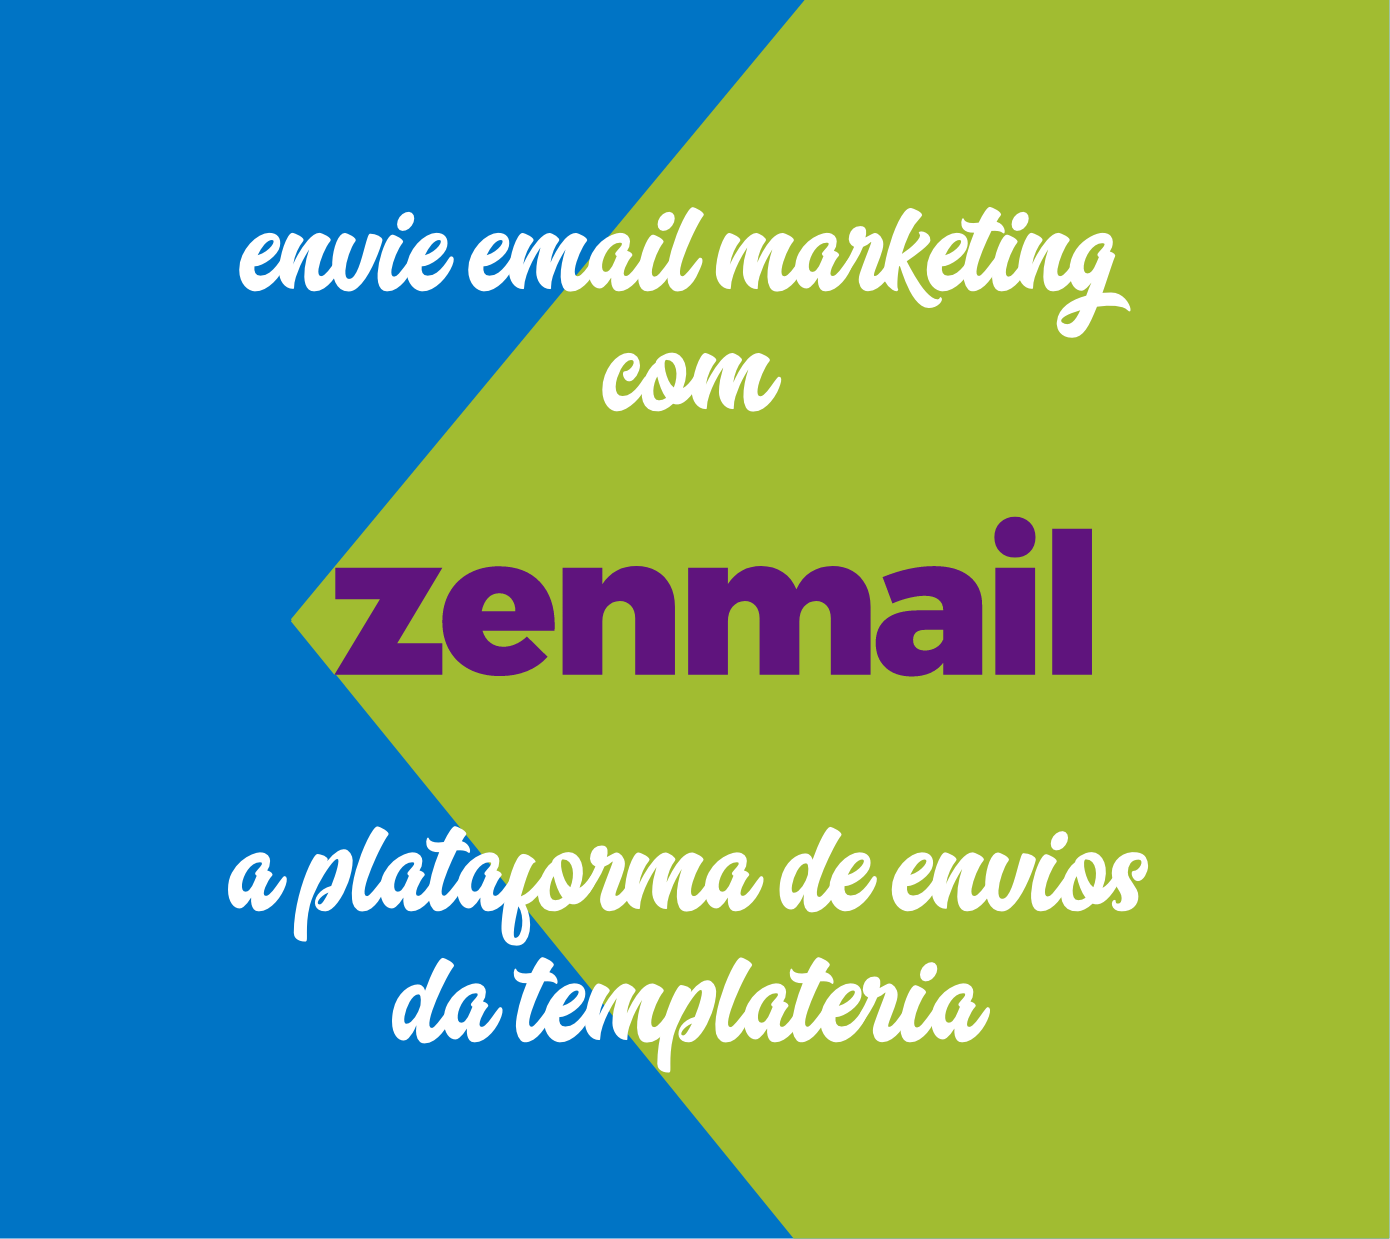 Envie email marketing com o Zenmail, a plataforma de email marketing da Templateria.